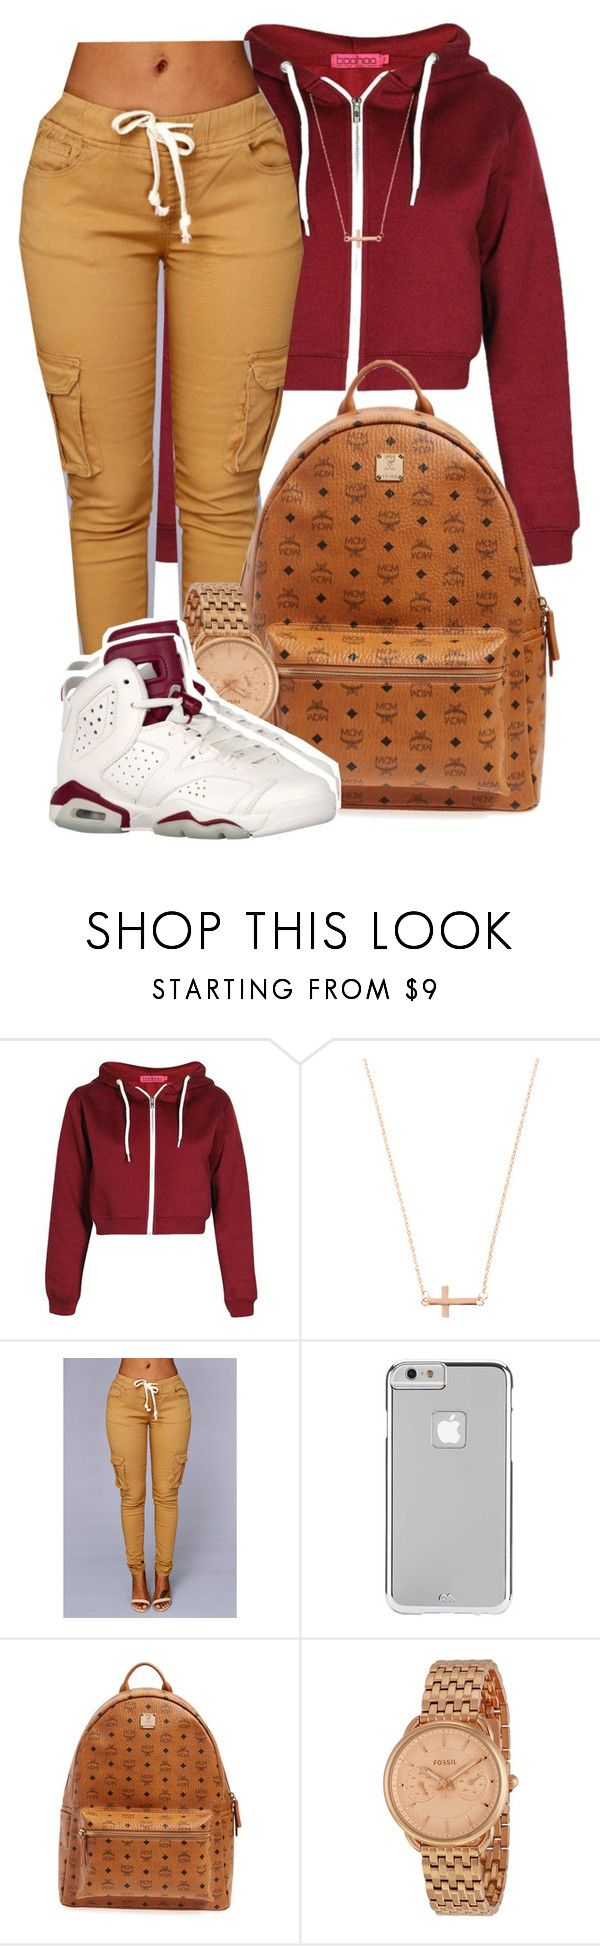 """"""" Buddy want a gram told his ahh to meet me halfway """" by mindlesspolyvore ❤ liked on Polyvore featuring ASOS, Case-Mate, MCM, FOSSIL, women's clothing, women, female, woman, misses and juniors"""